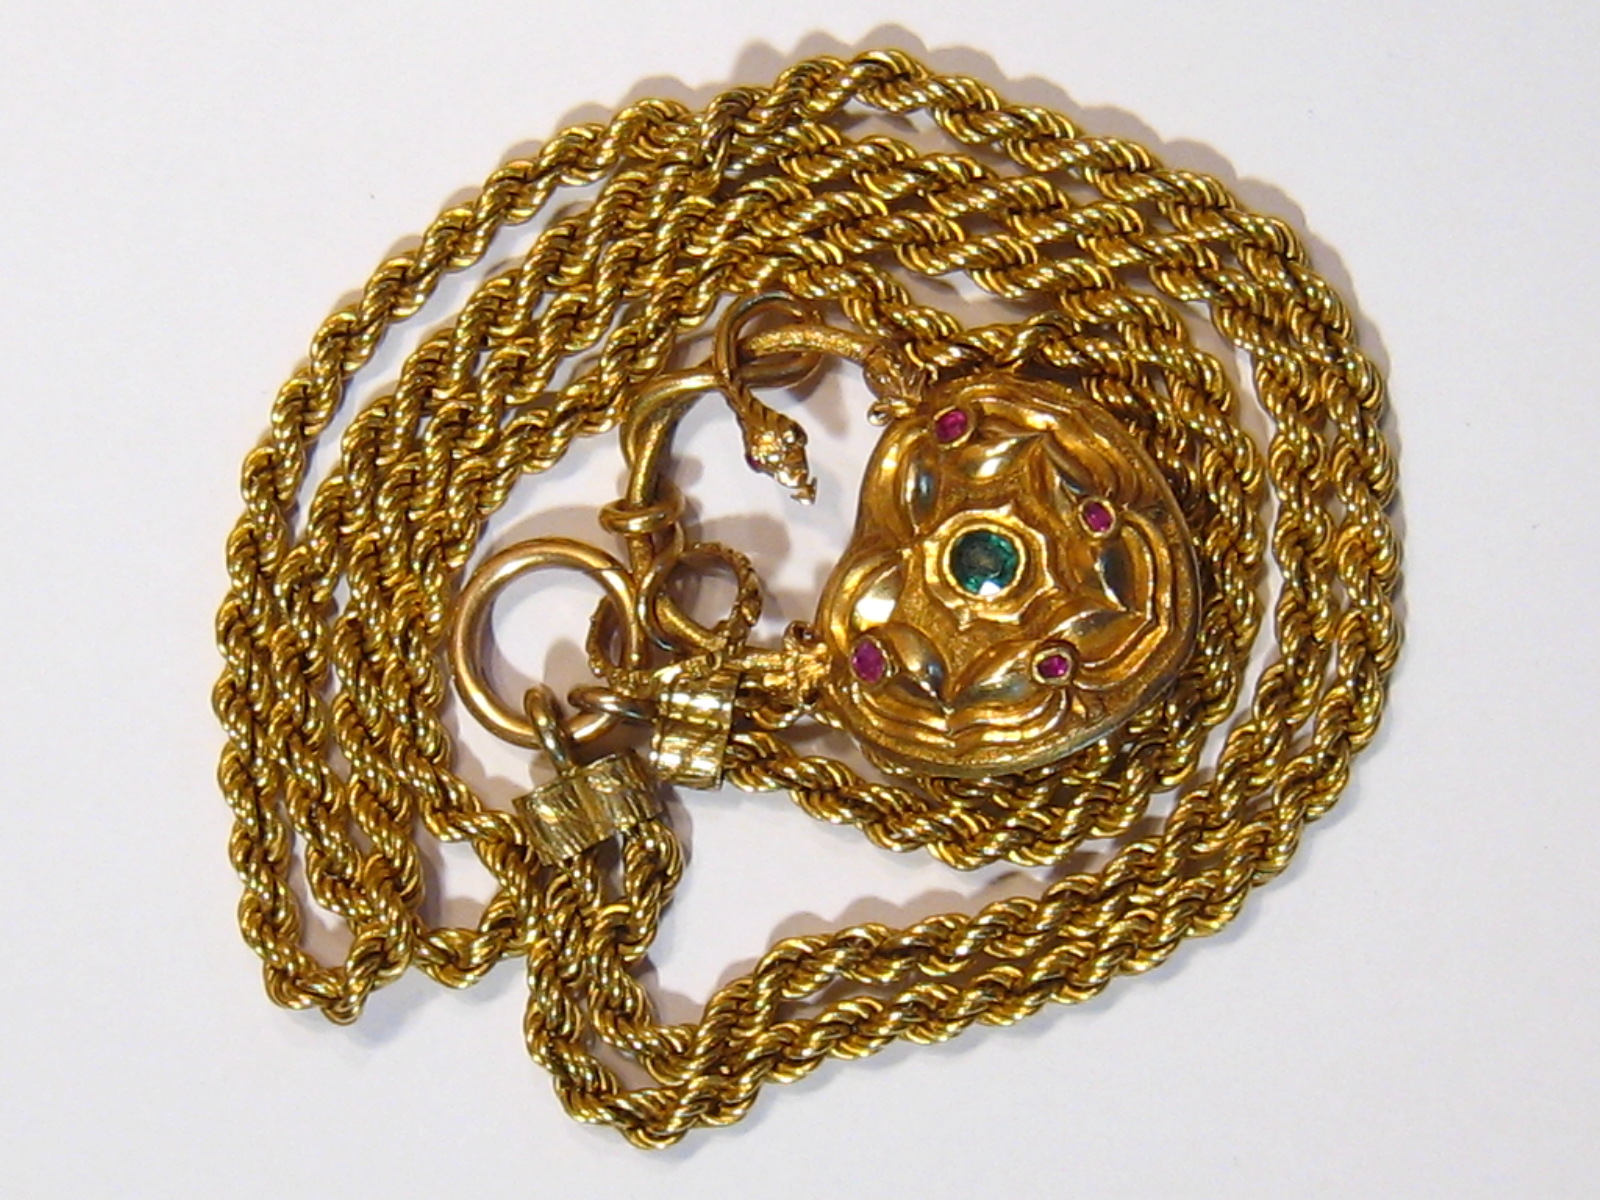 A fine antique gold necklace, the pendant symbolising love, designed as a heart shaped padlock - Image 14 of 15